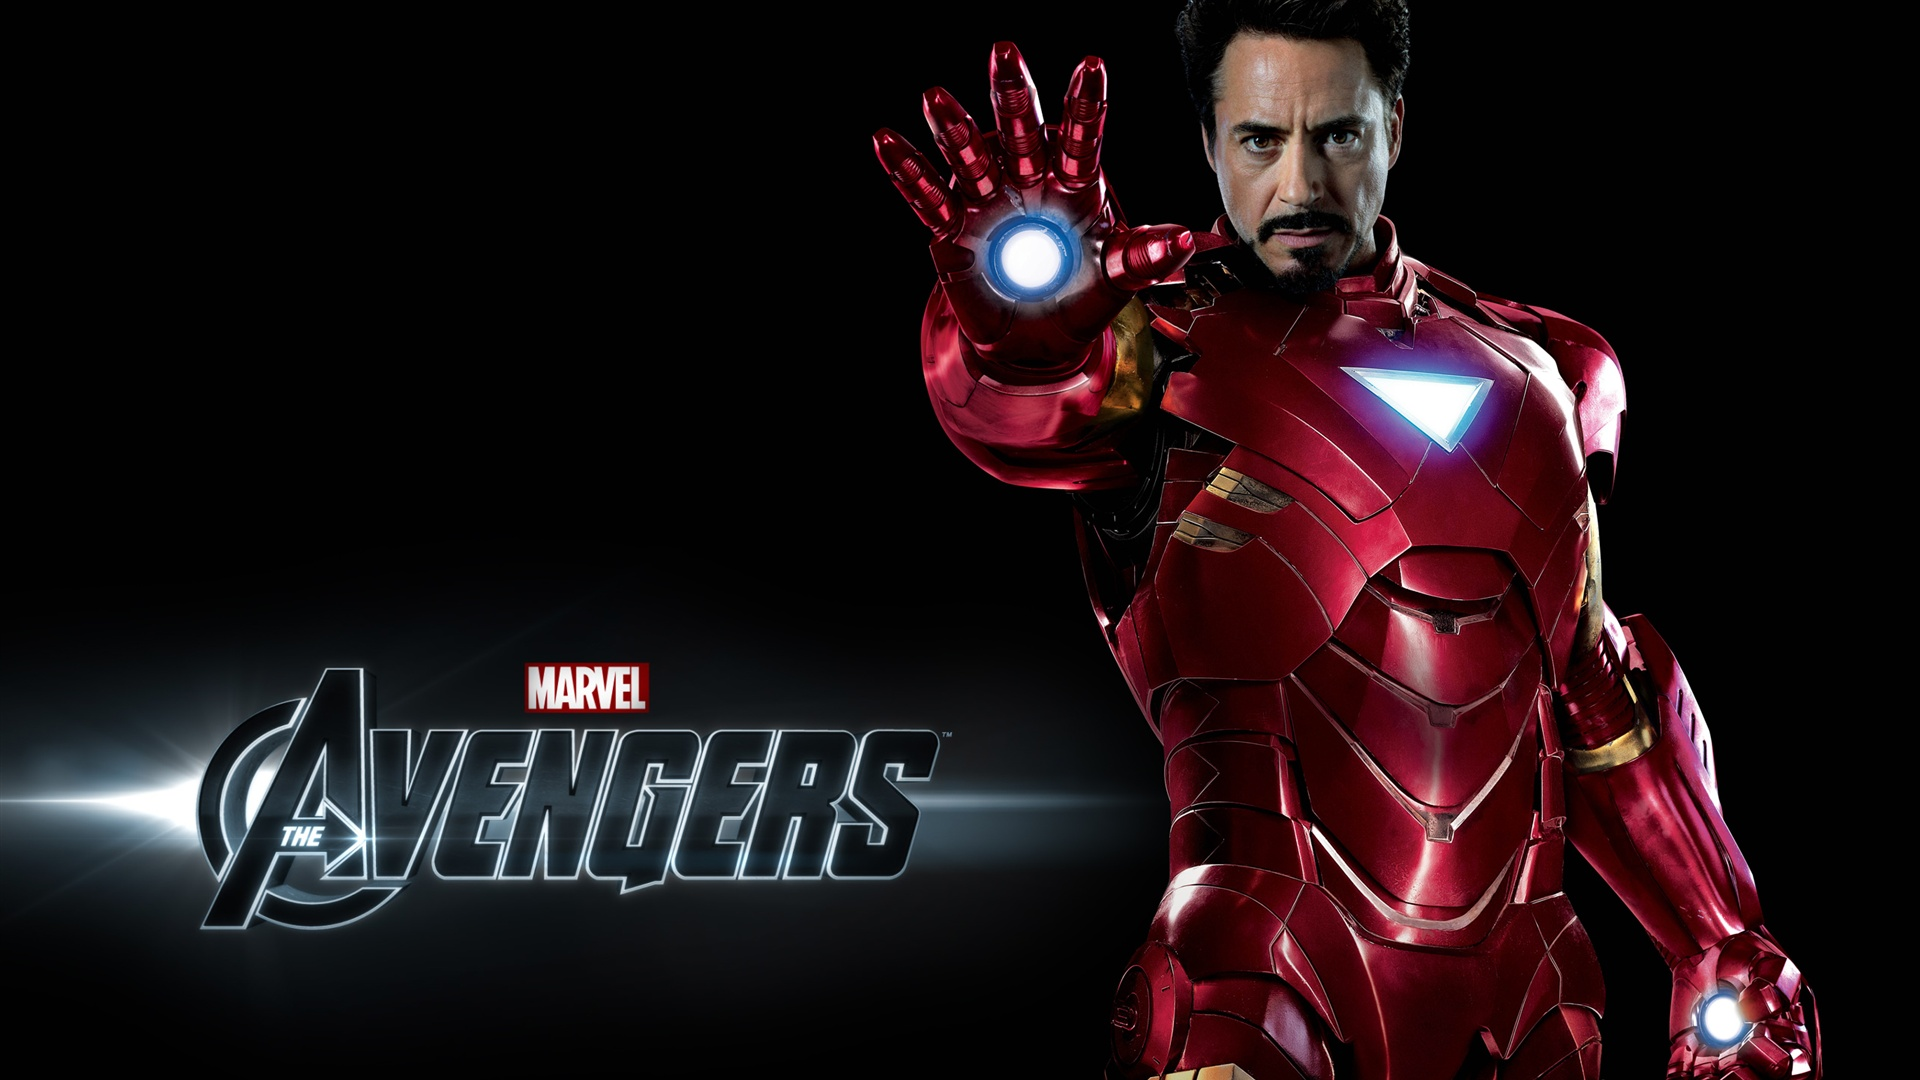 iron man dans the avengers fonds d'écran 1920x1080 fonds d'écran